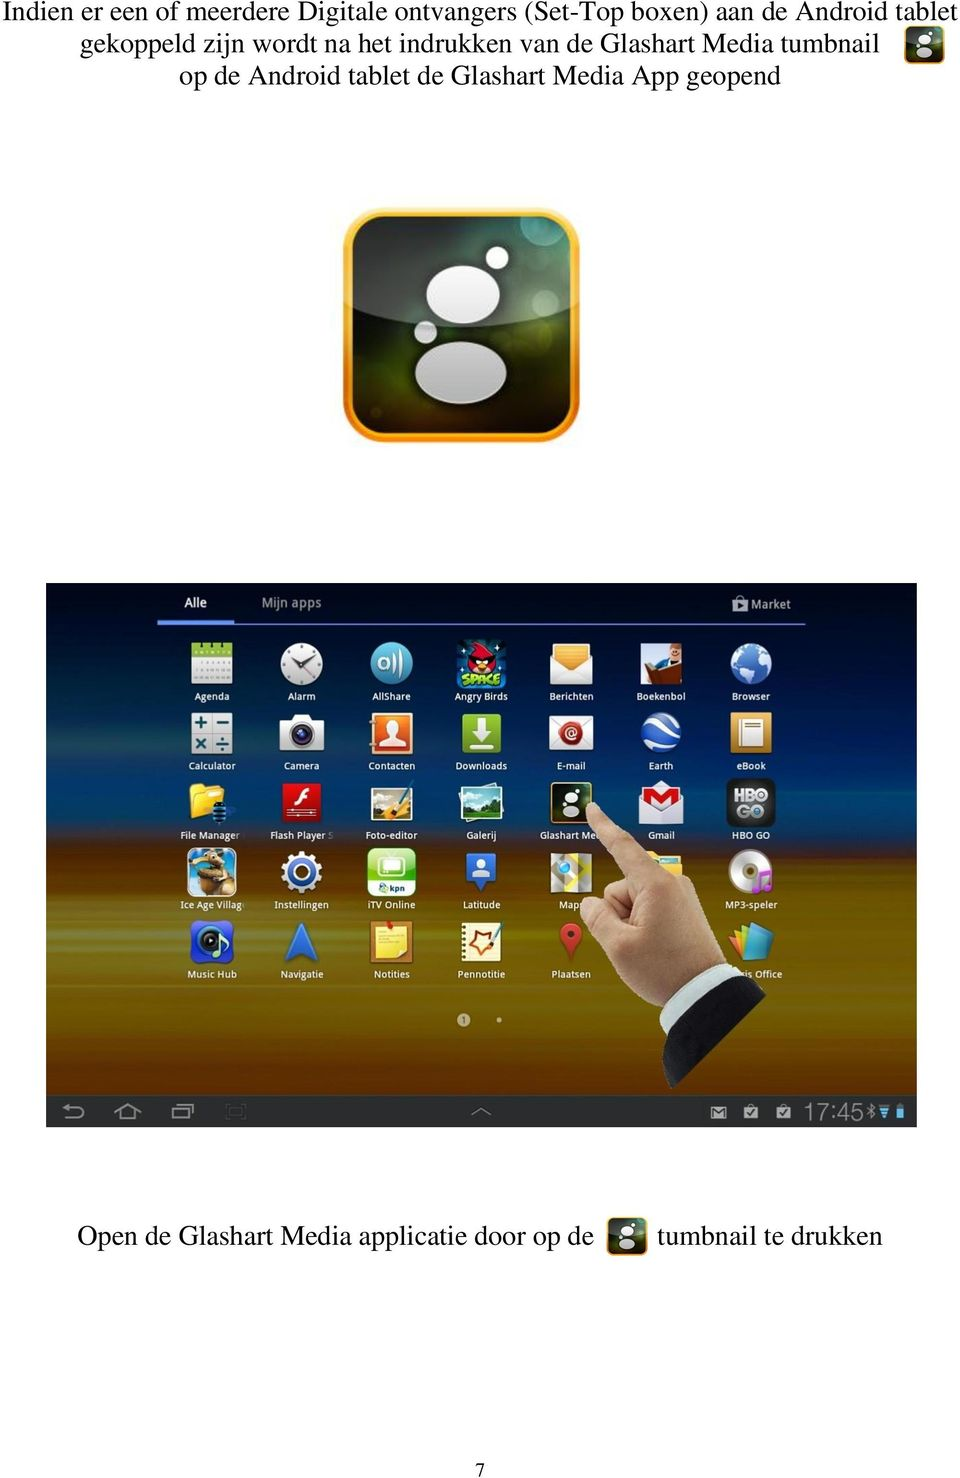 Glashart Media tumbnail op de Android tablet de Glashart Media App